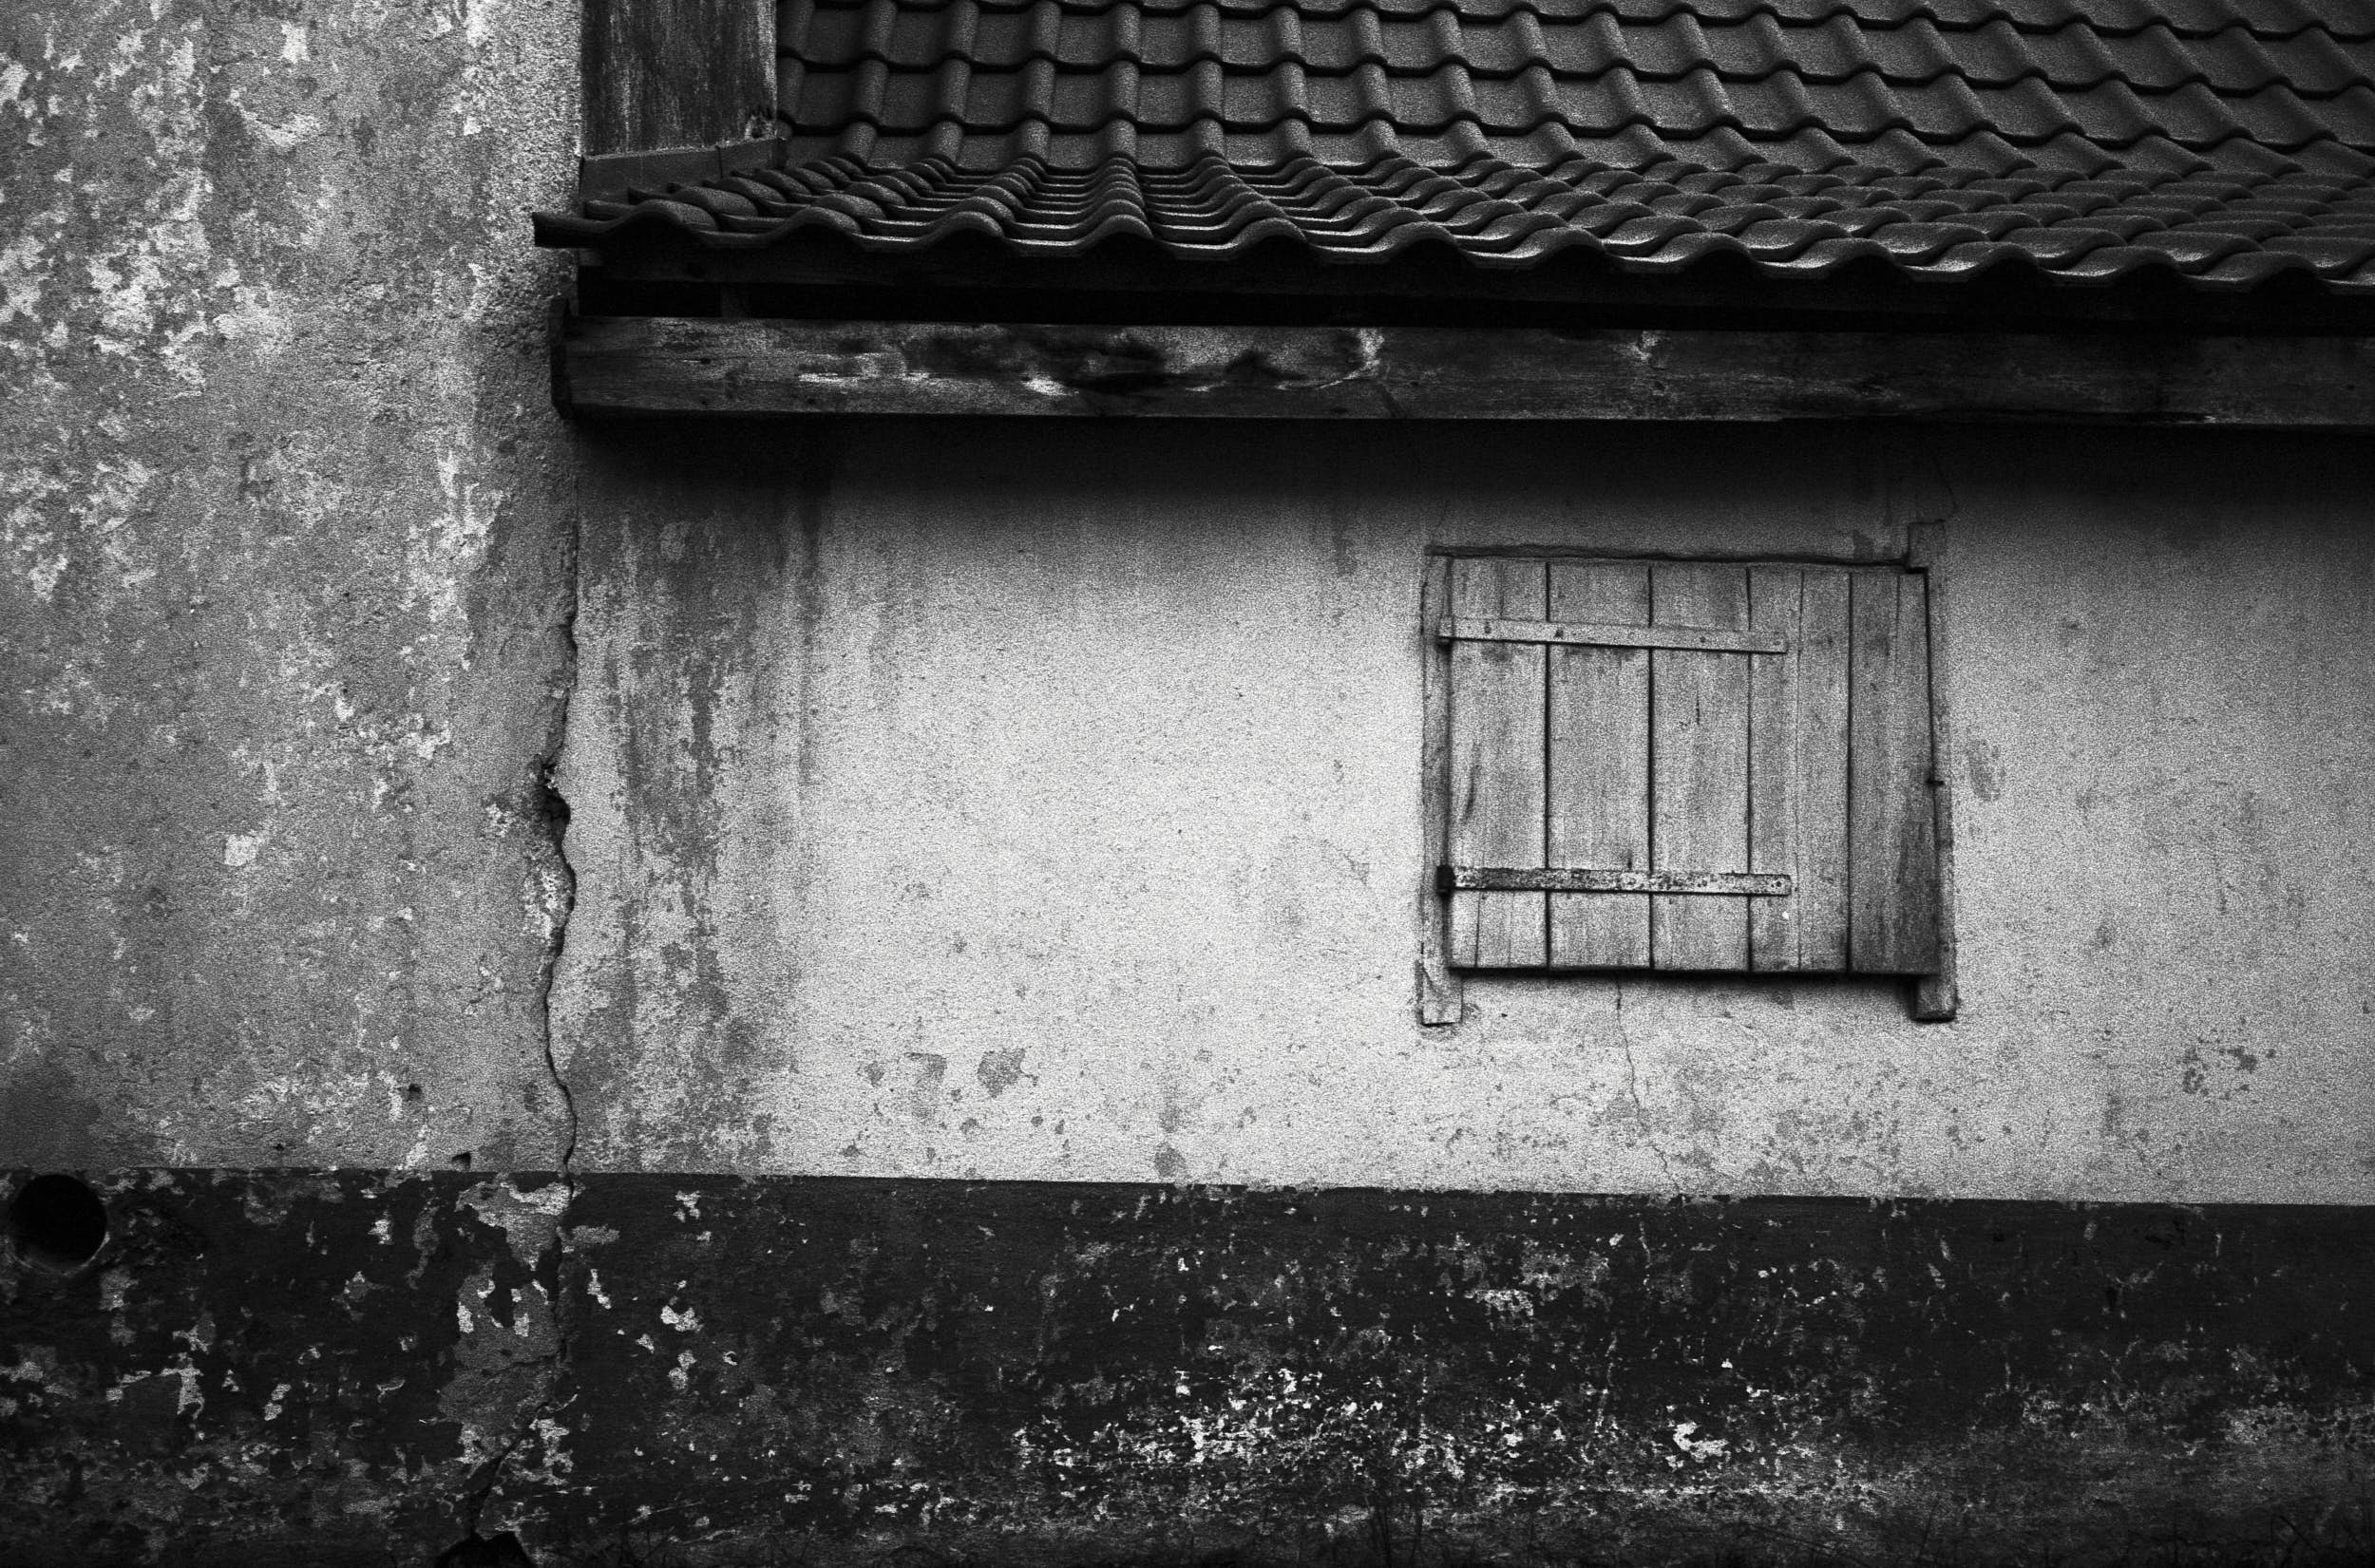 Black and white documentary photography: scenes from everyday life of a small village in the south of Czech Republic.